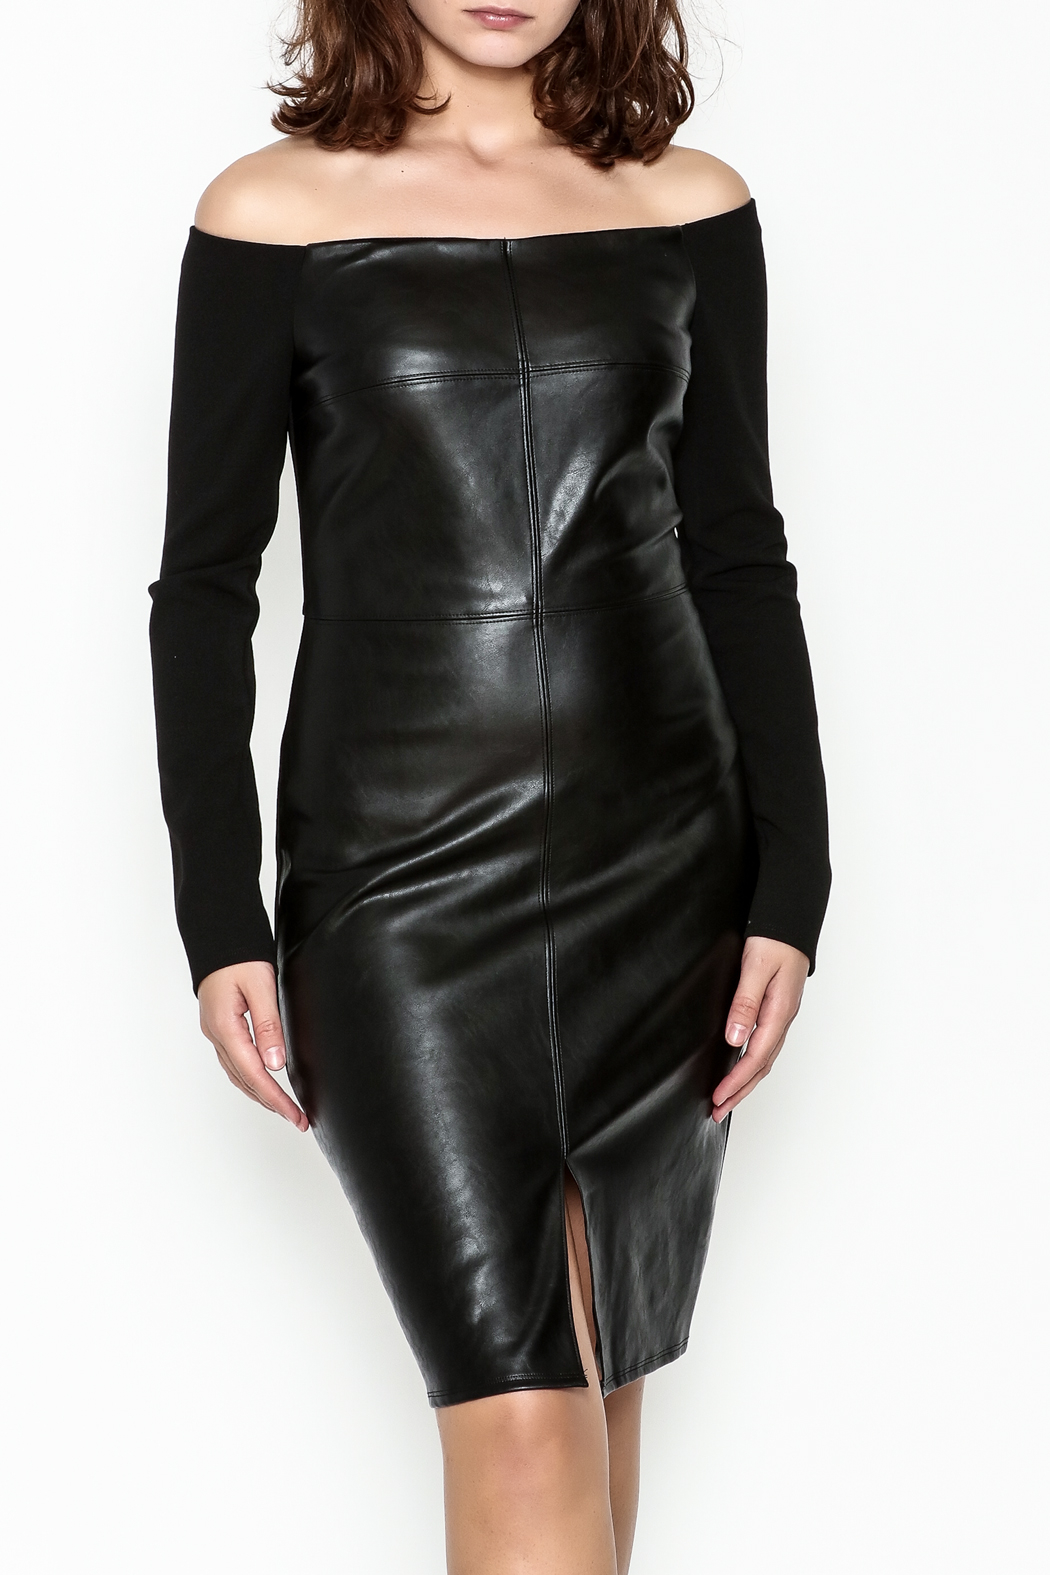 Do & Be Faux Leather Dress - Main Image